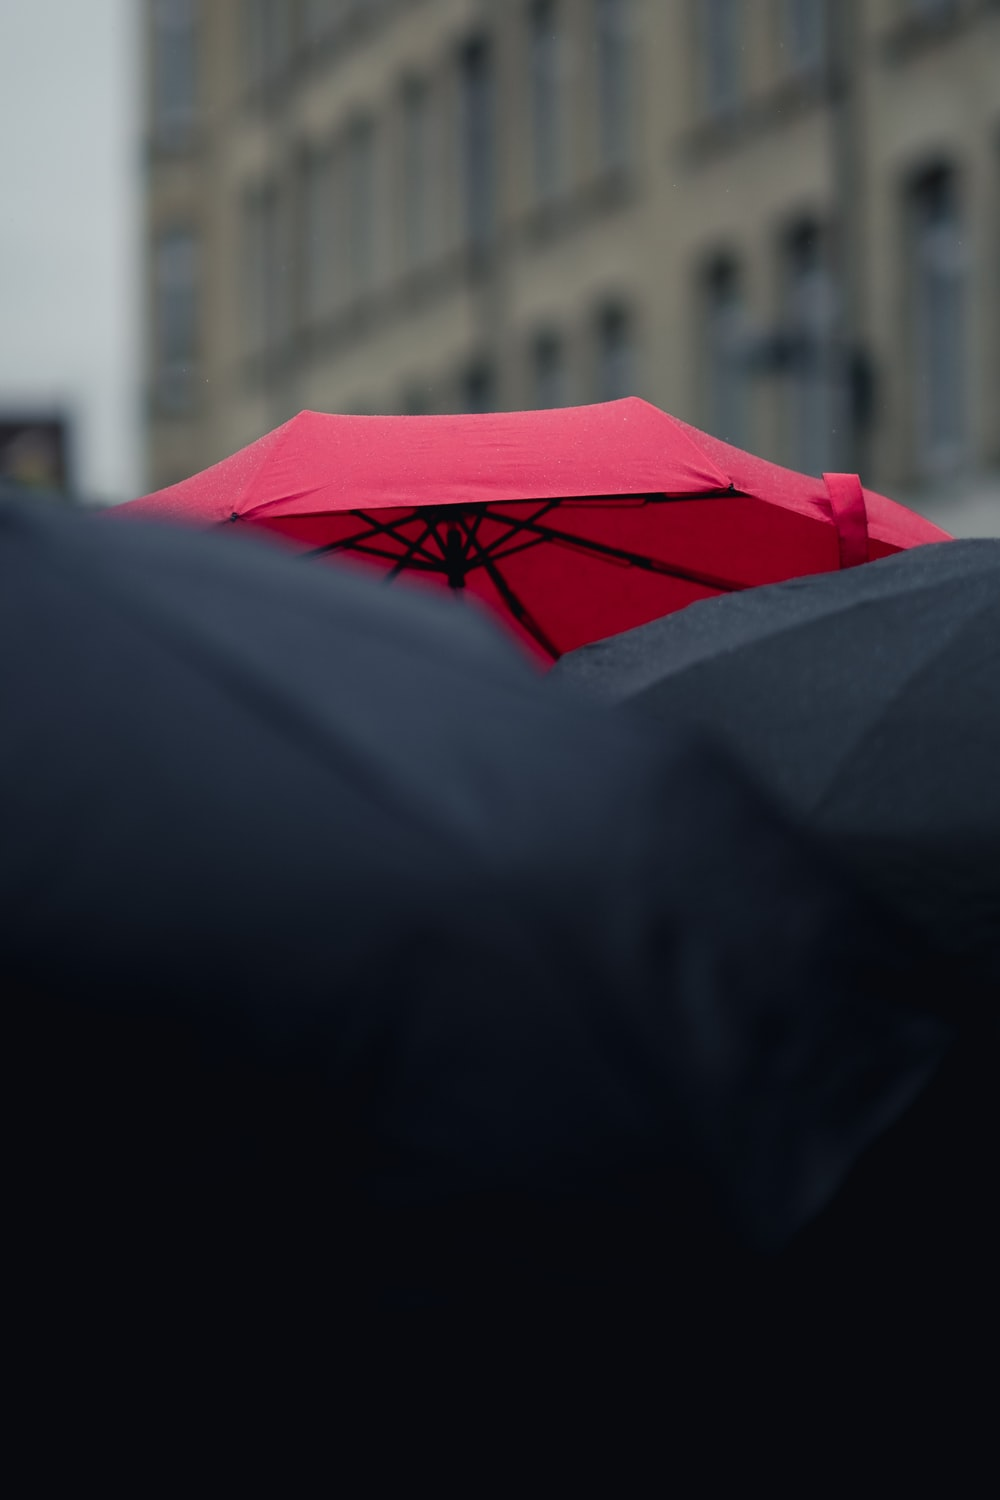 closeup photography of black and red umbrellas